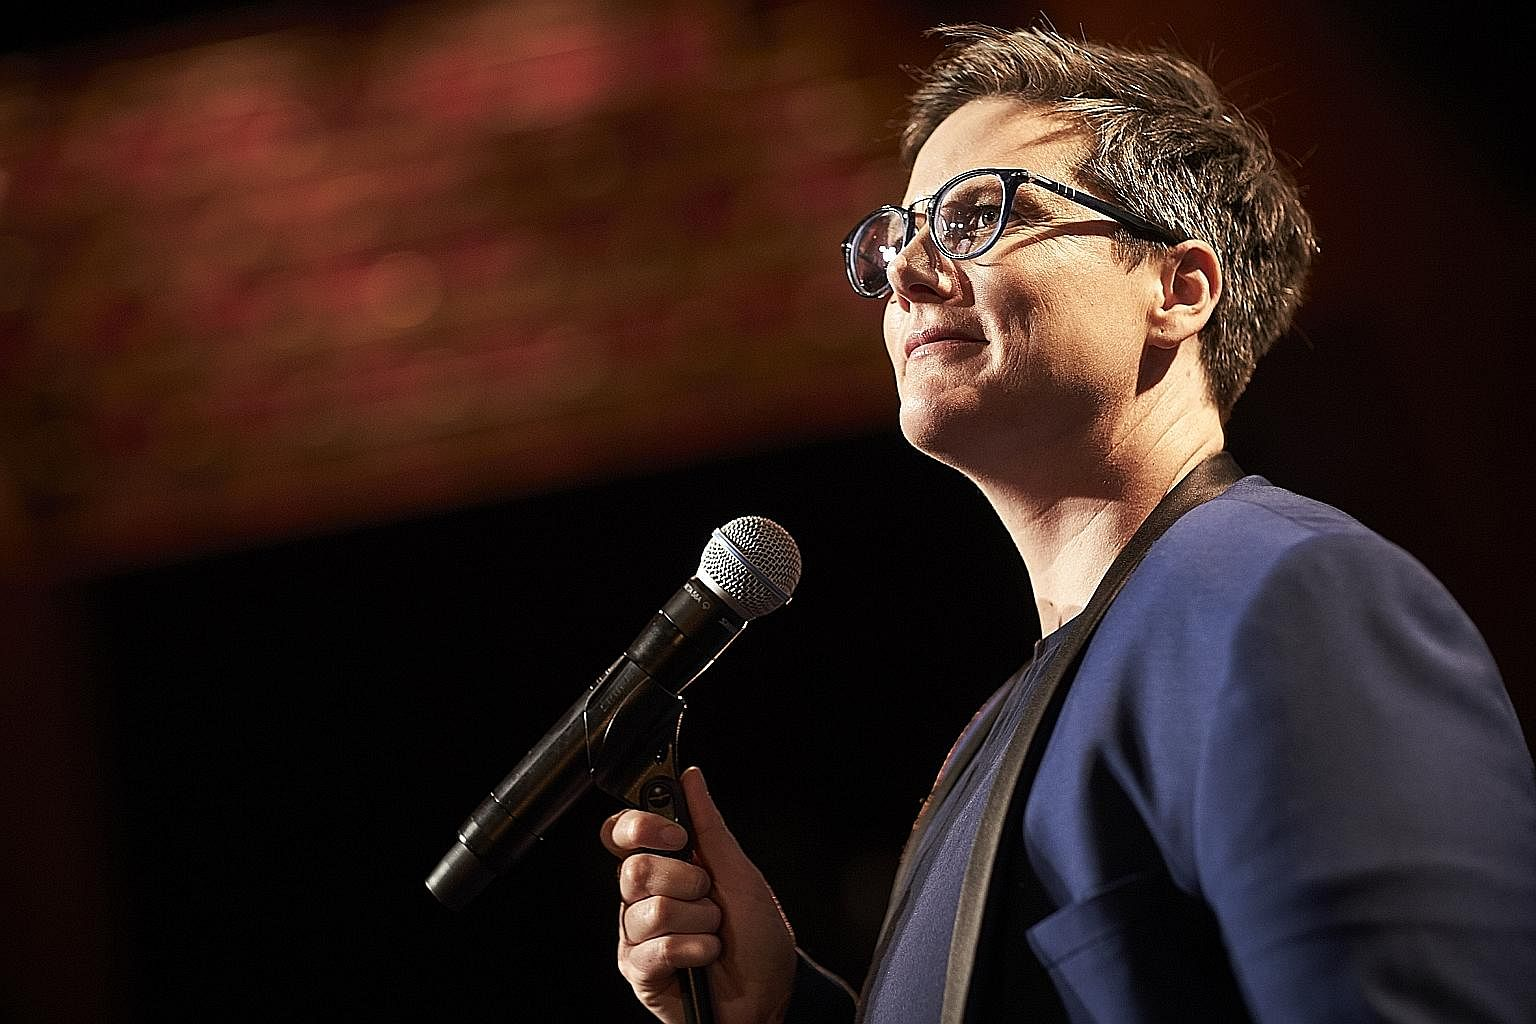 Gay comedienne Hannah Gadsby (above) does a blistering takedown of patriarchal power and shows raw emotion in her Netflix special Nanette, while Sacha Baron Cohen (left) reveals divisions in modern America as three characters in Who Is America?.